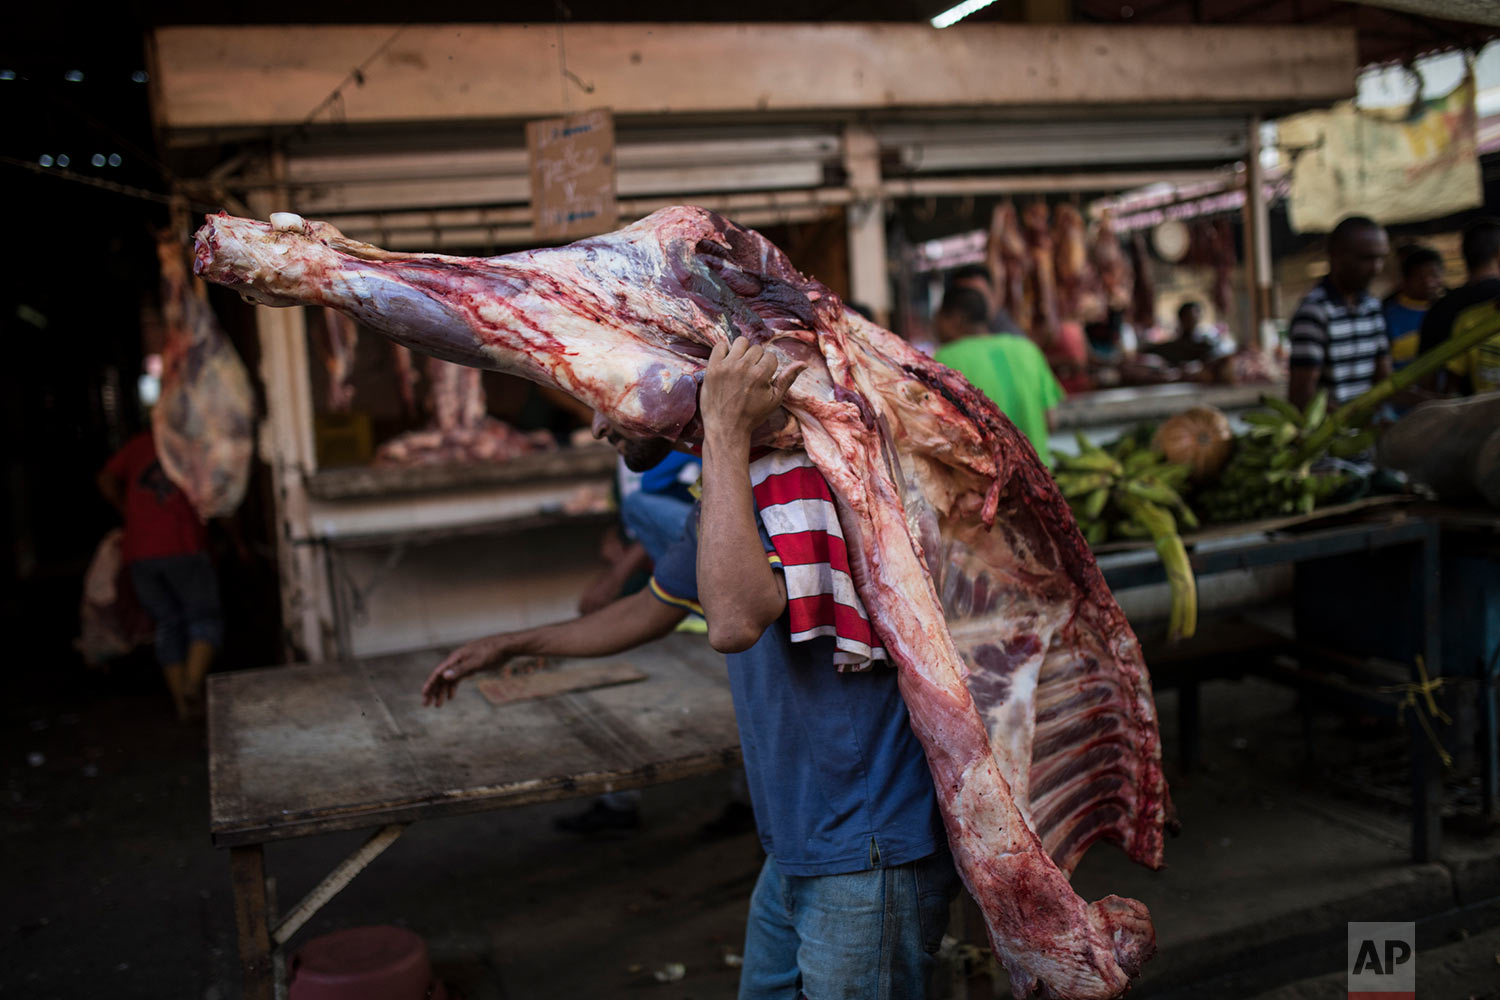 A vendor carries beef to a butcher shop at the flea market in Maracaibo, Venezuela, May 16, 2019. He'll have to sell it quickly, since perishables go bad quickly without refrigeration in Maracaibo's suffocating temperatures. (AP Photo/Rodrigo Abd)